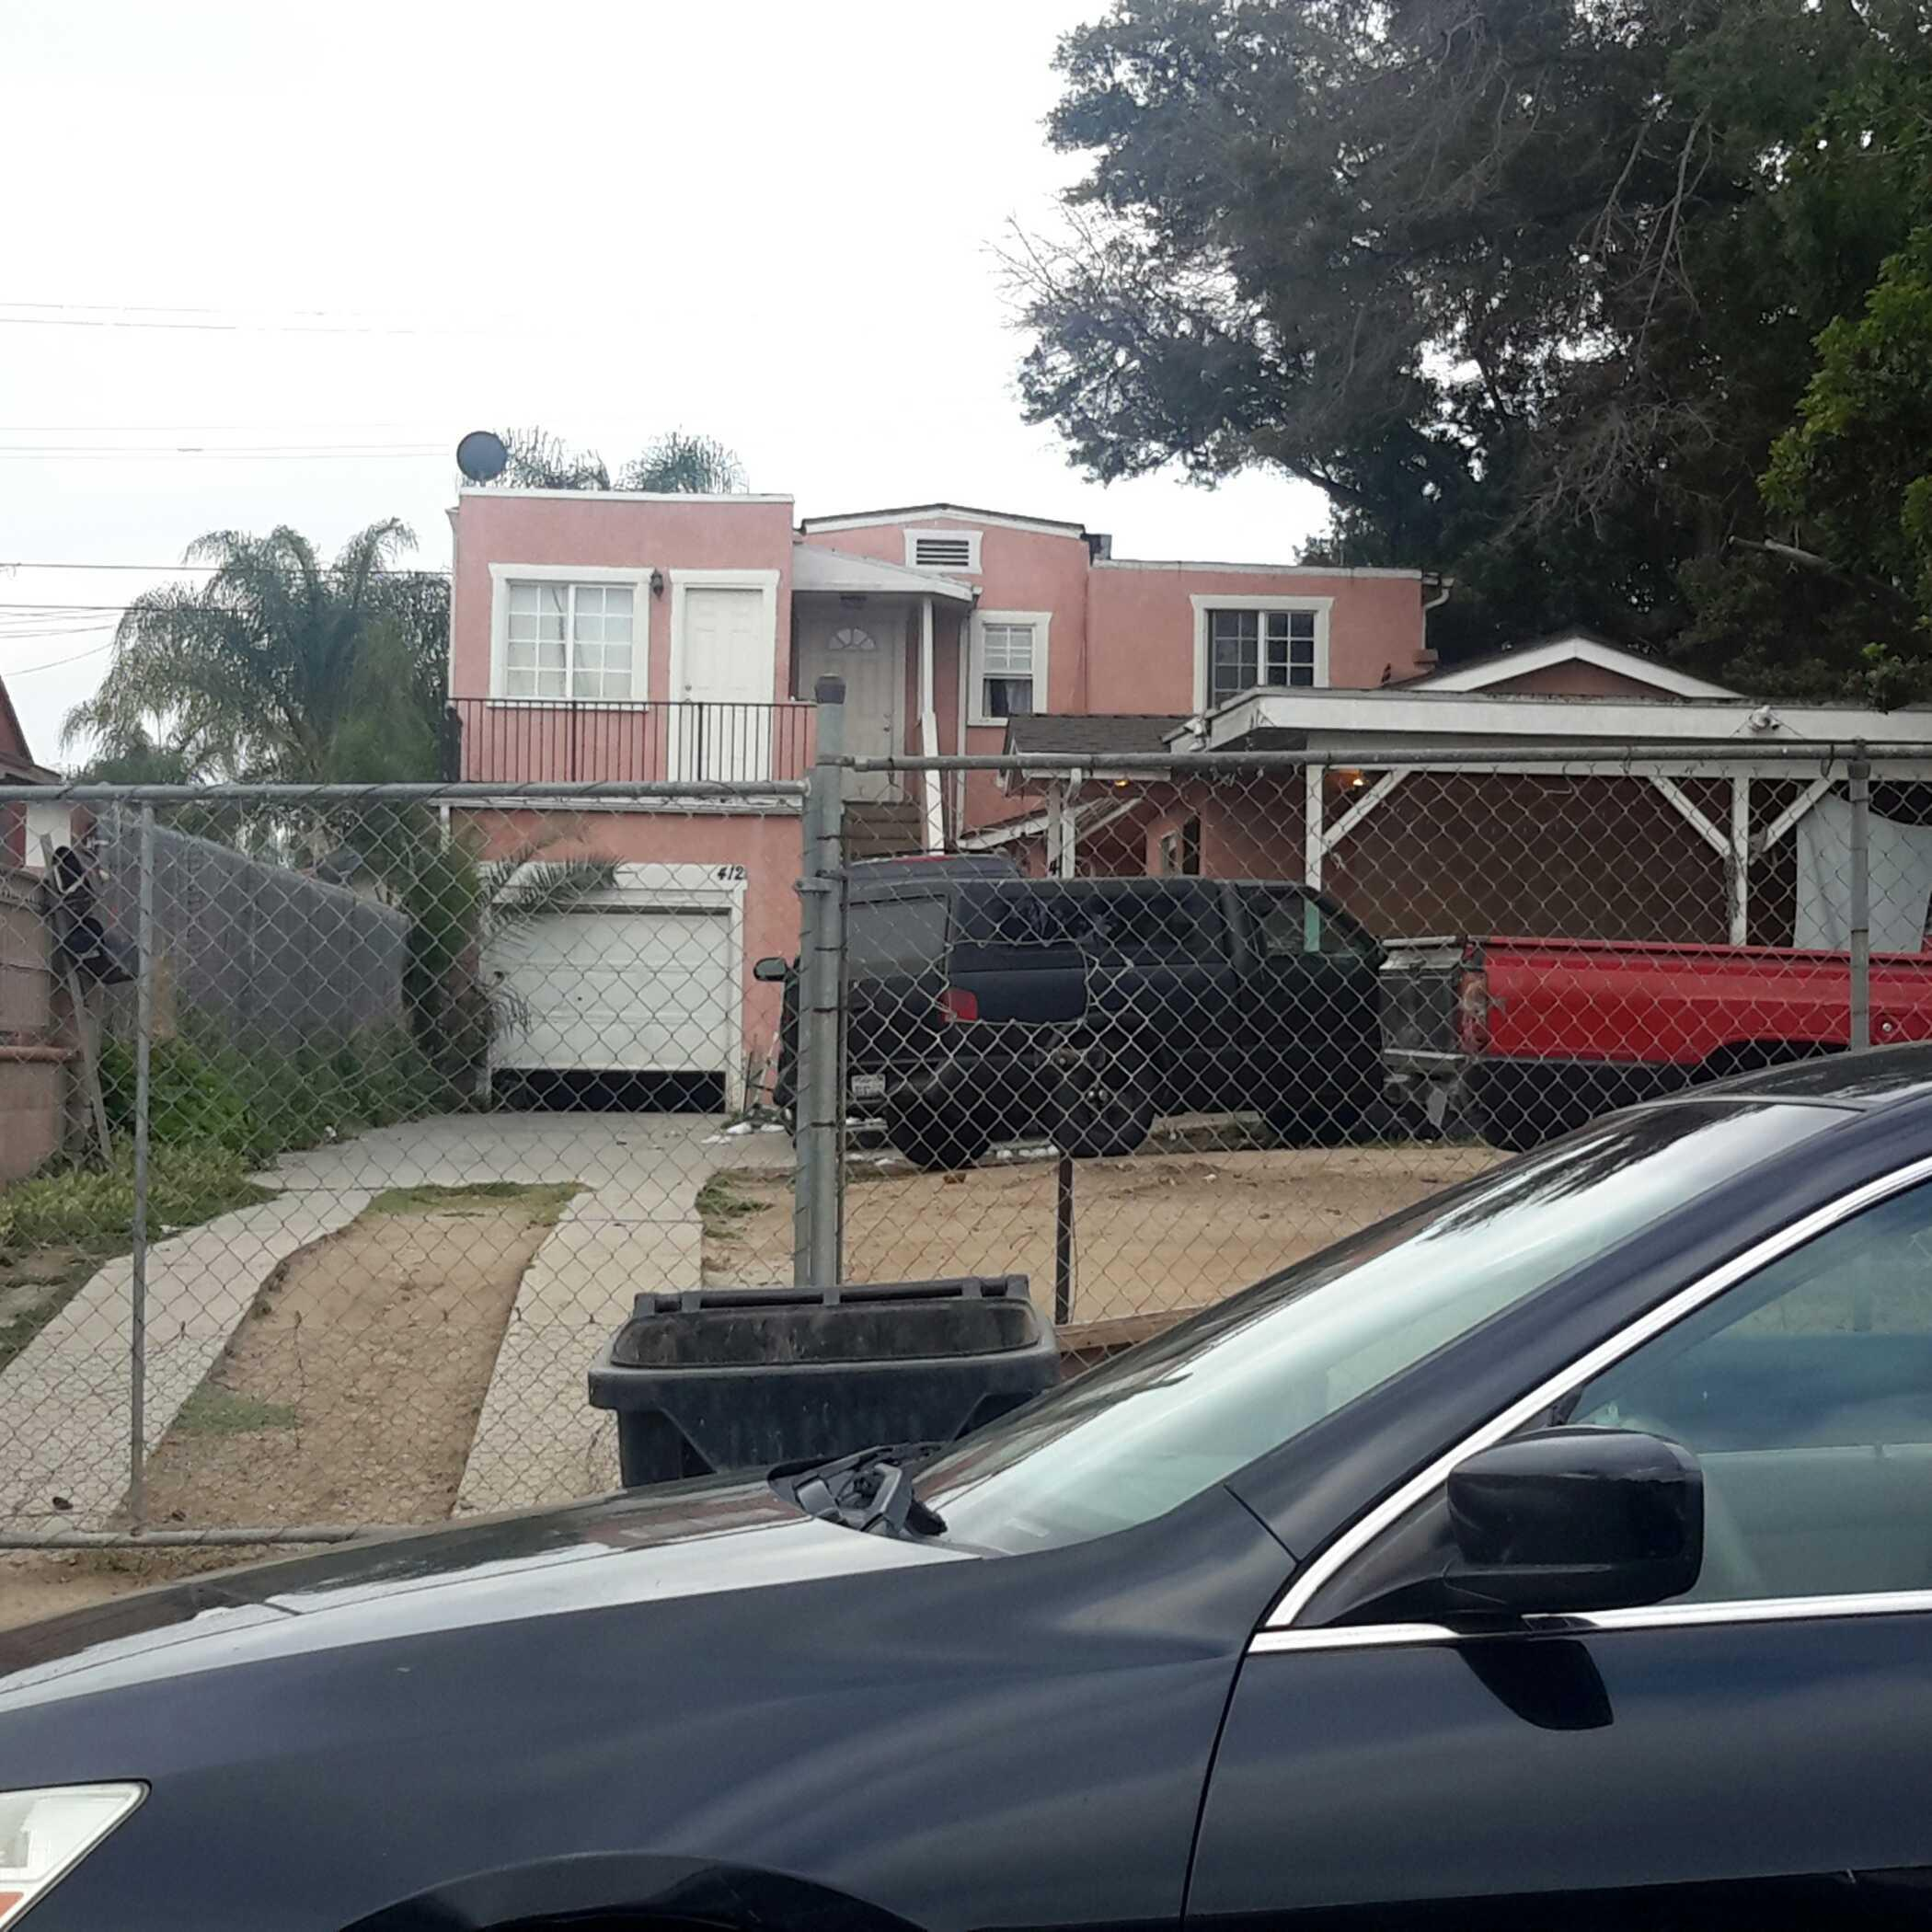 Los Angeles foreclosures – 412 412 1/2 W 104th St, Los Angeles, CA 90003